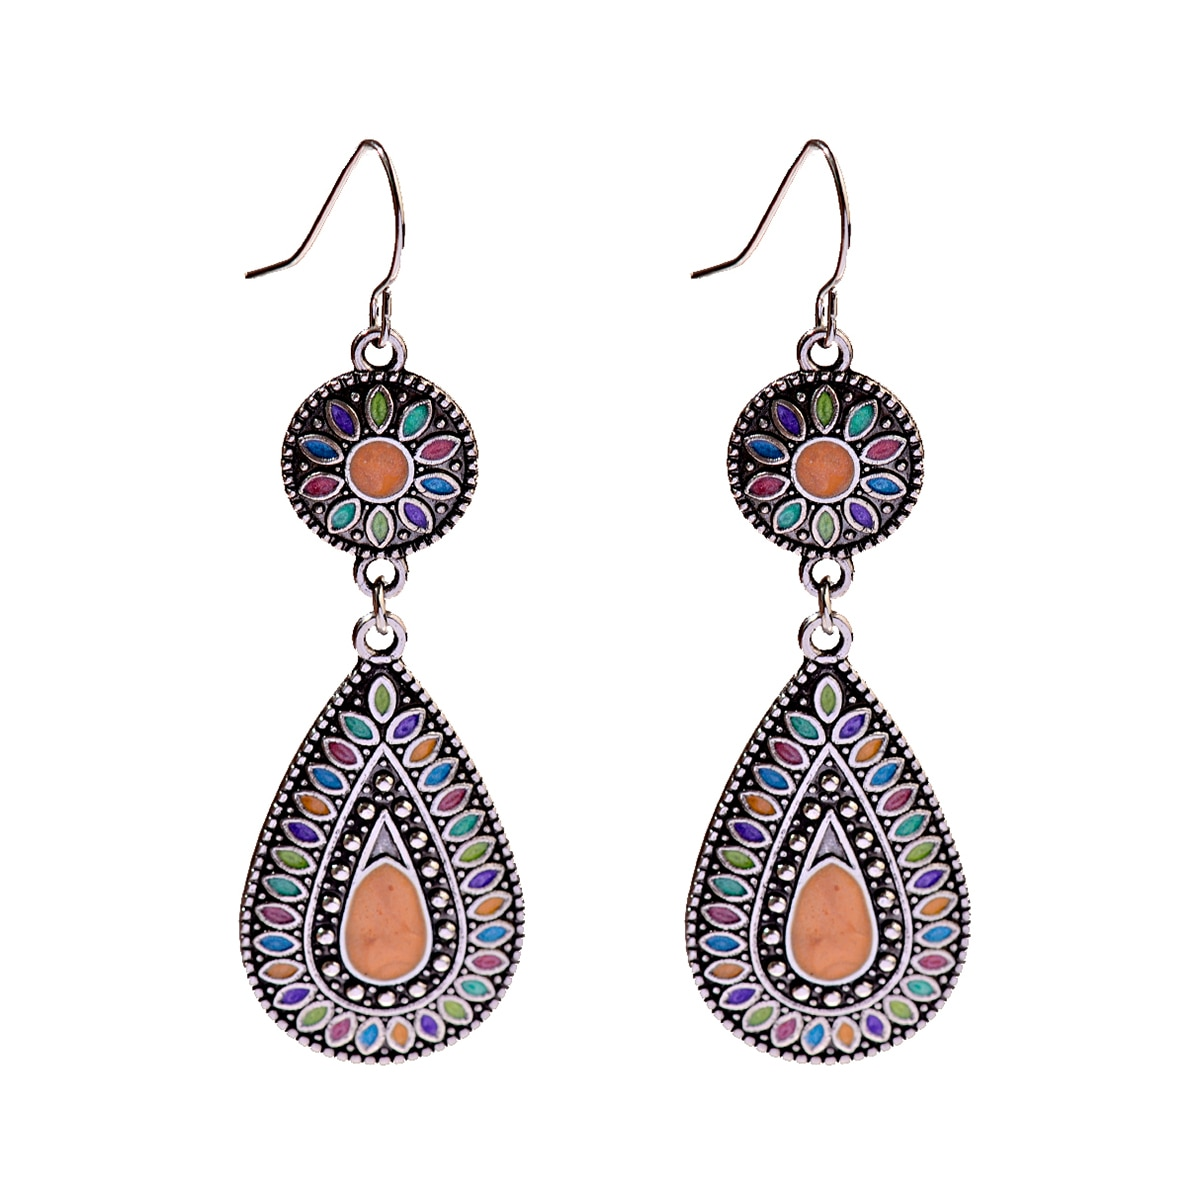 DOUVEI Bohemian Vintage Colorful Water Drop Earring Nepal India Jewelry Zinc Alloy Ethnic Earrings For Women Party Gift